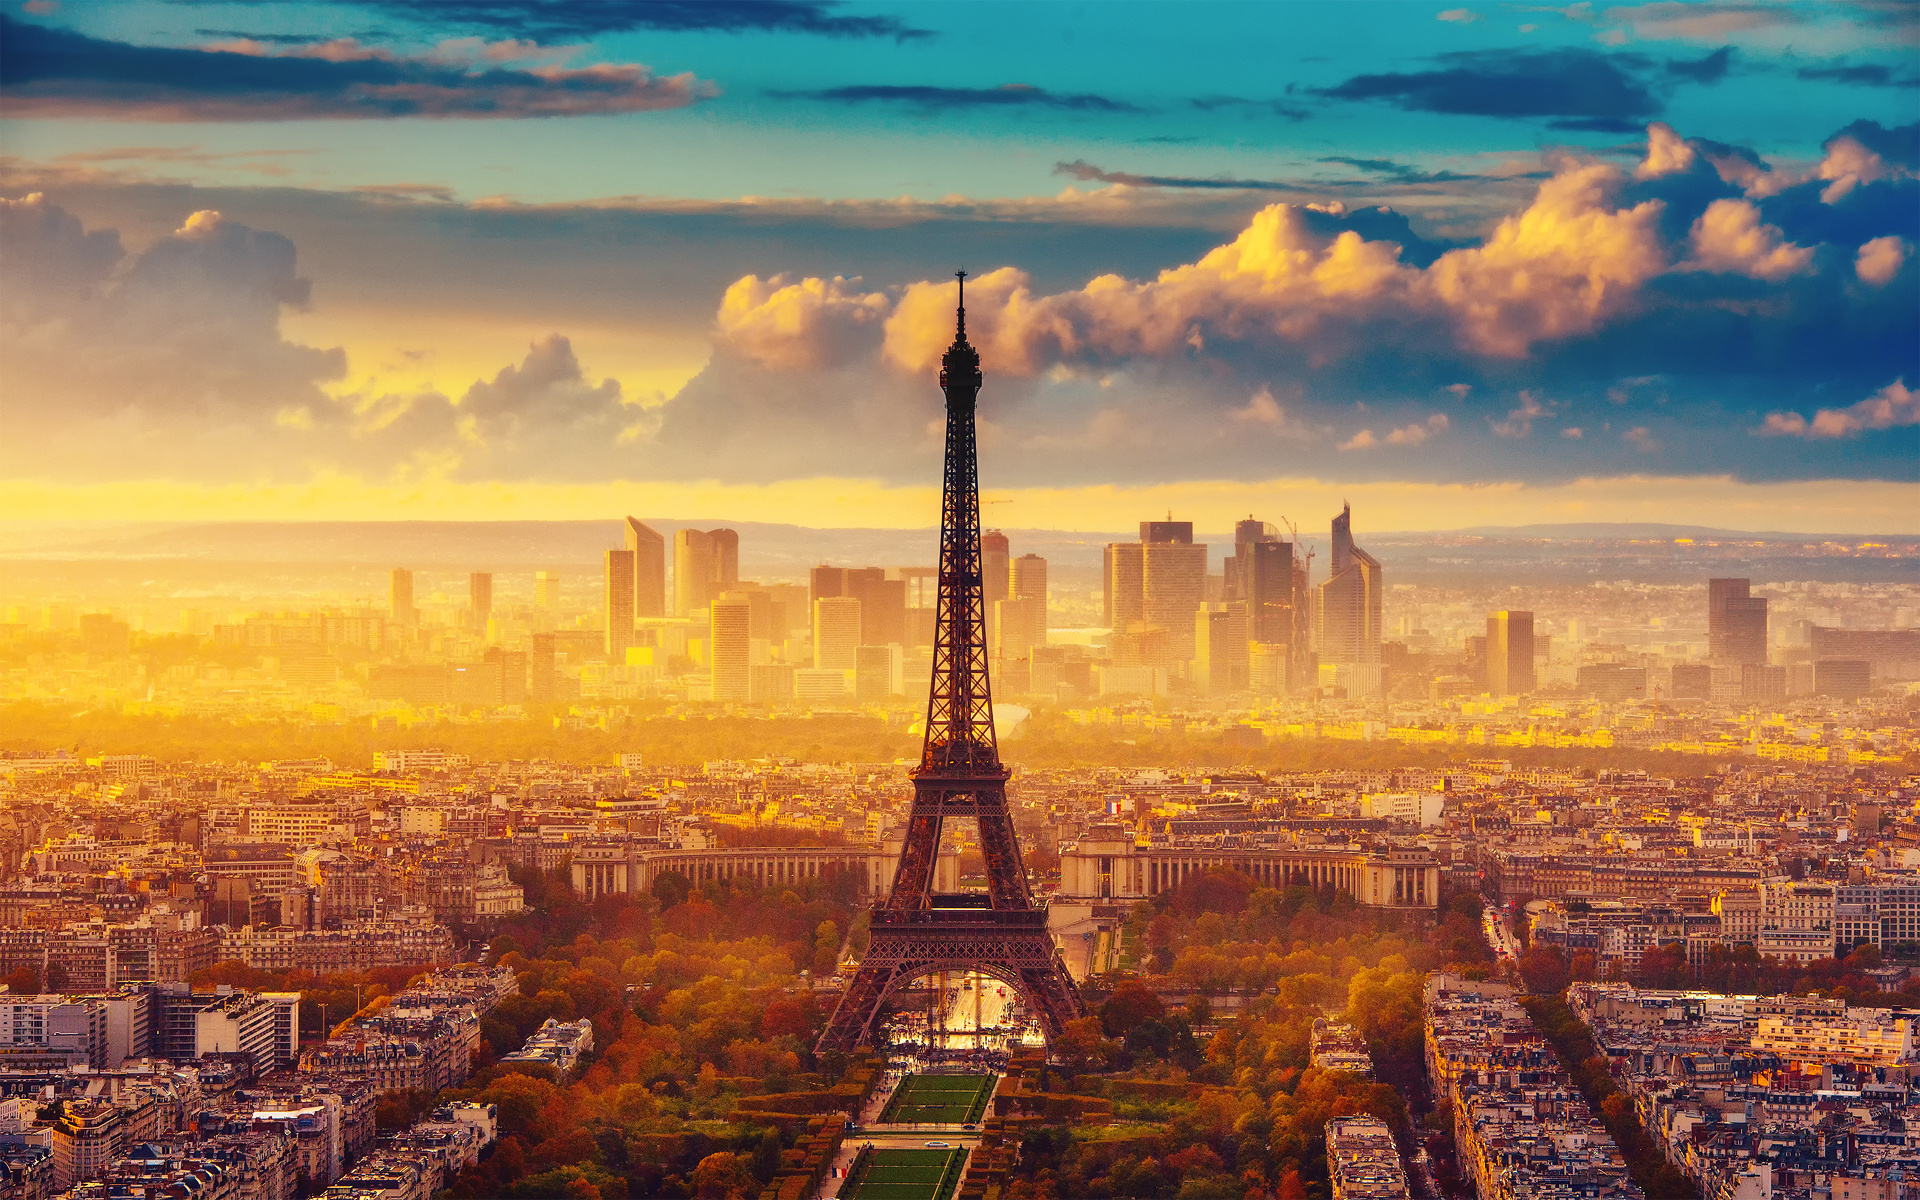 city Paris Eiffel Tower France autumn wallpaper background 1920x1200